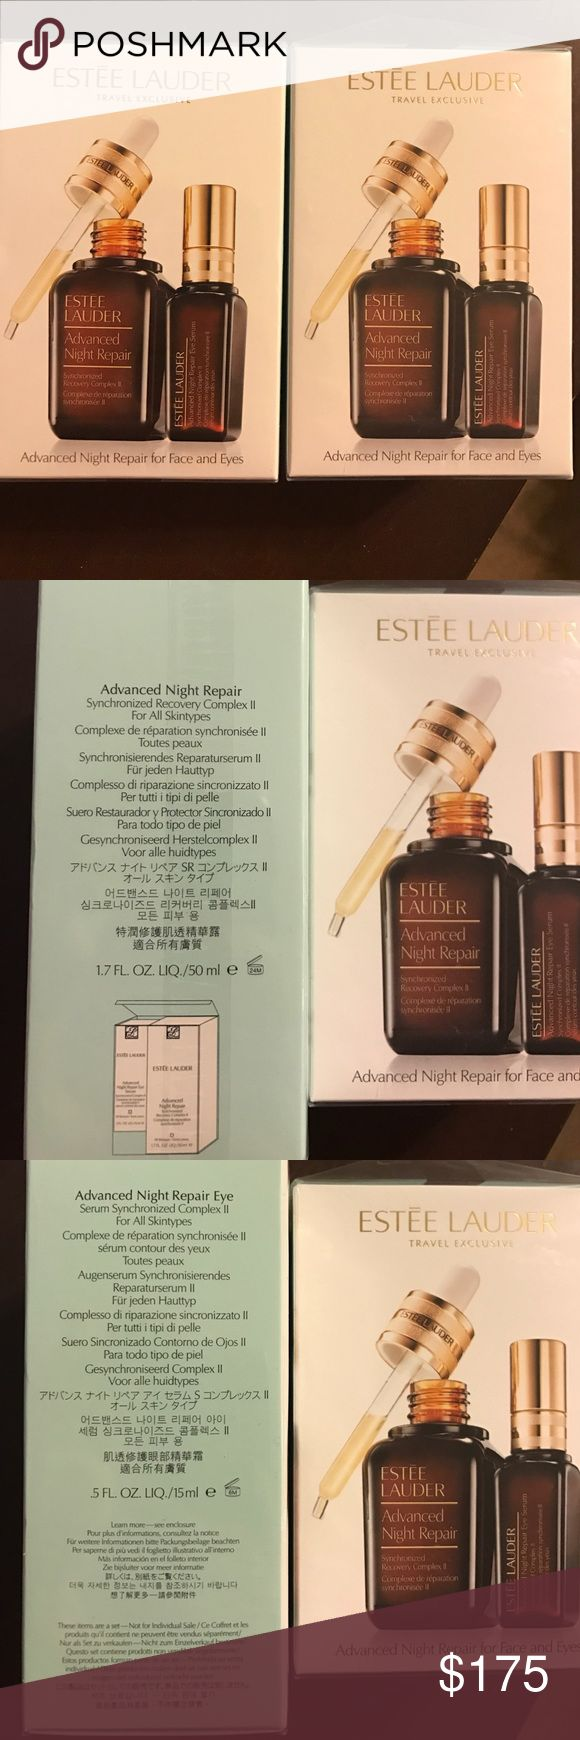 Estee Lauder Advanced Night Repair Two boxes of Advanced Night Repair each including one bottle of 1.7 oz (50ml) Advanced Night Repair and .5 oz (15ml) Advanced Night Repair Eye.  Brand new with the plastic still on.  Bought these both at an Estee Lauder save and next day got hit with a $500 car bill #jeepissues so need to pay my car bill.  YOU ARE BUYING BOTH BOXES.  Retail price is about $160 each box.  Make a reasonable offer. Estee Lauder Makeup